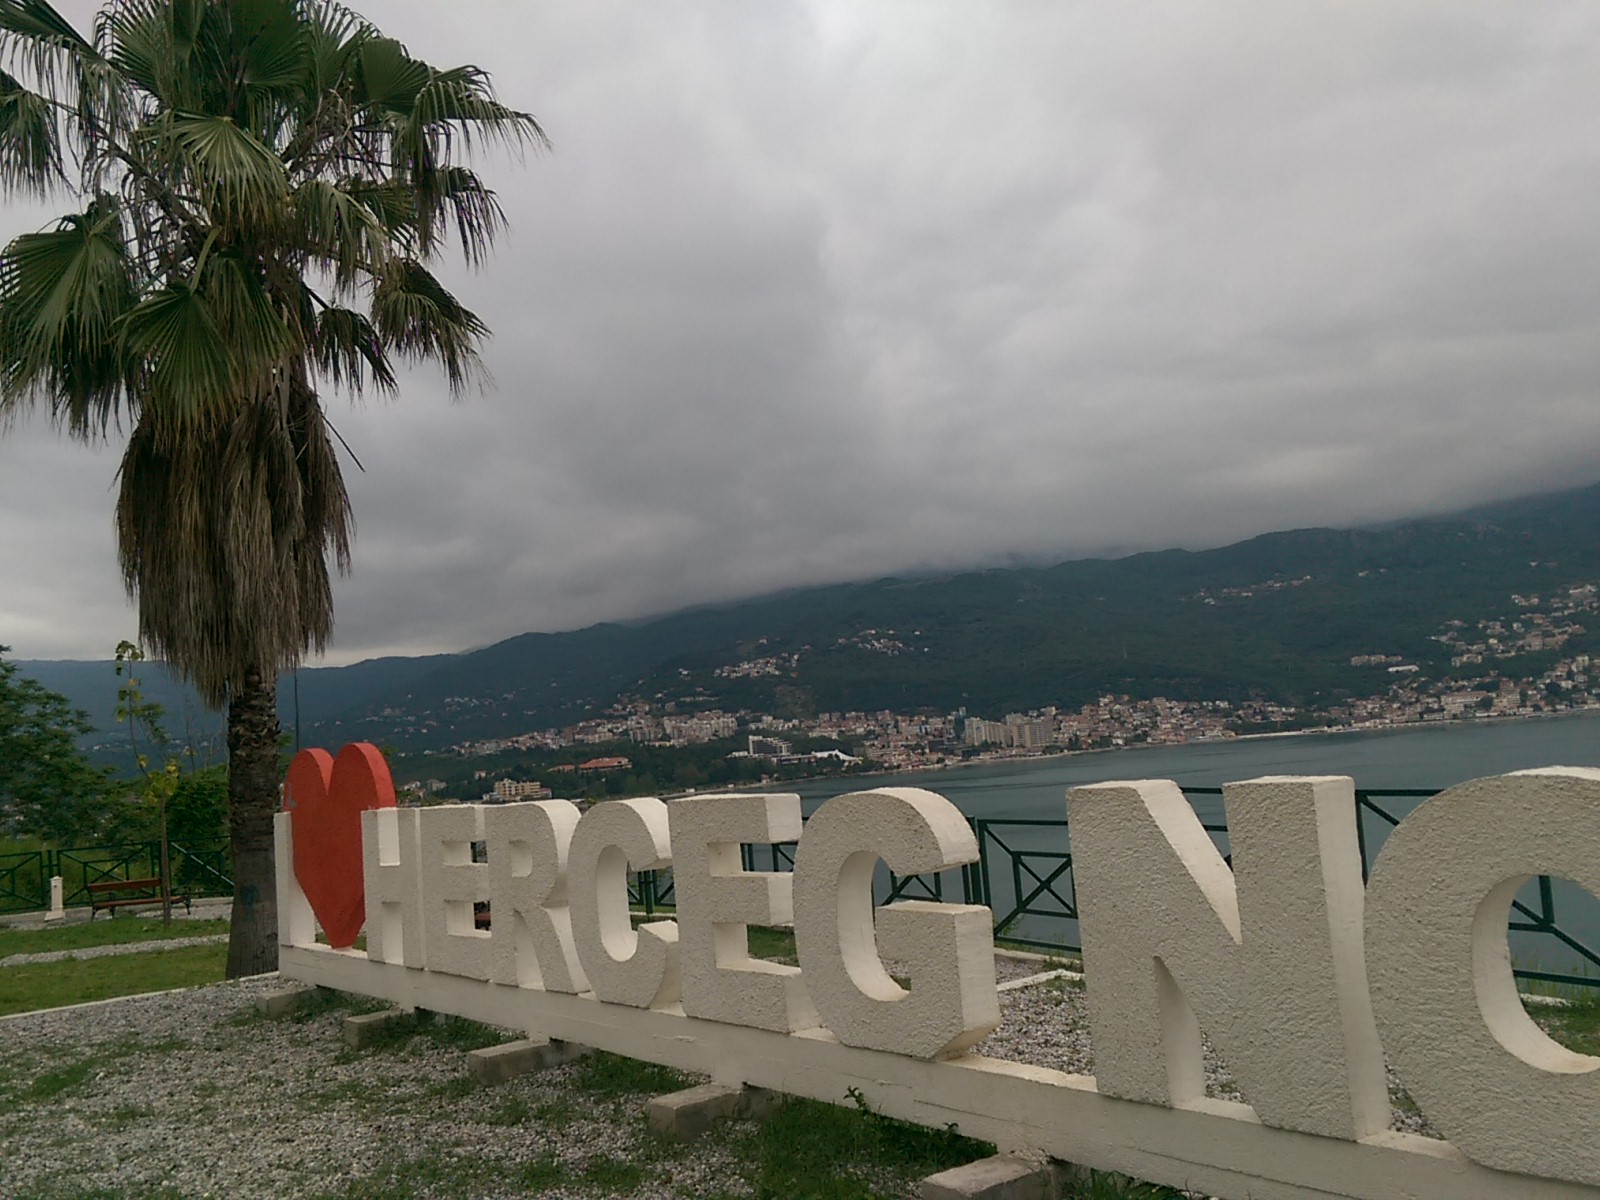 Giant I <3 Herceg Novi sign next to a palm tree in front of a distant bay view of a town, with thick white clouds over the mountains